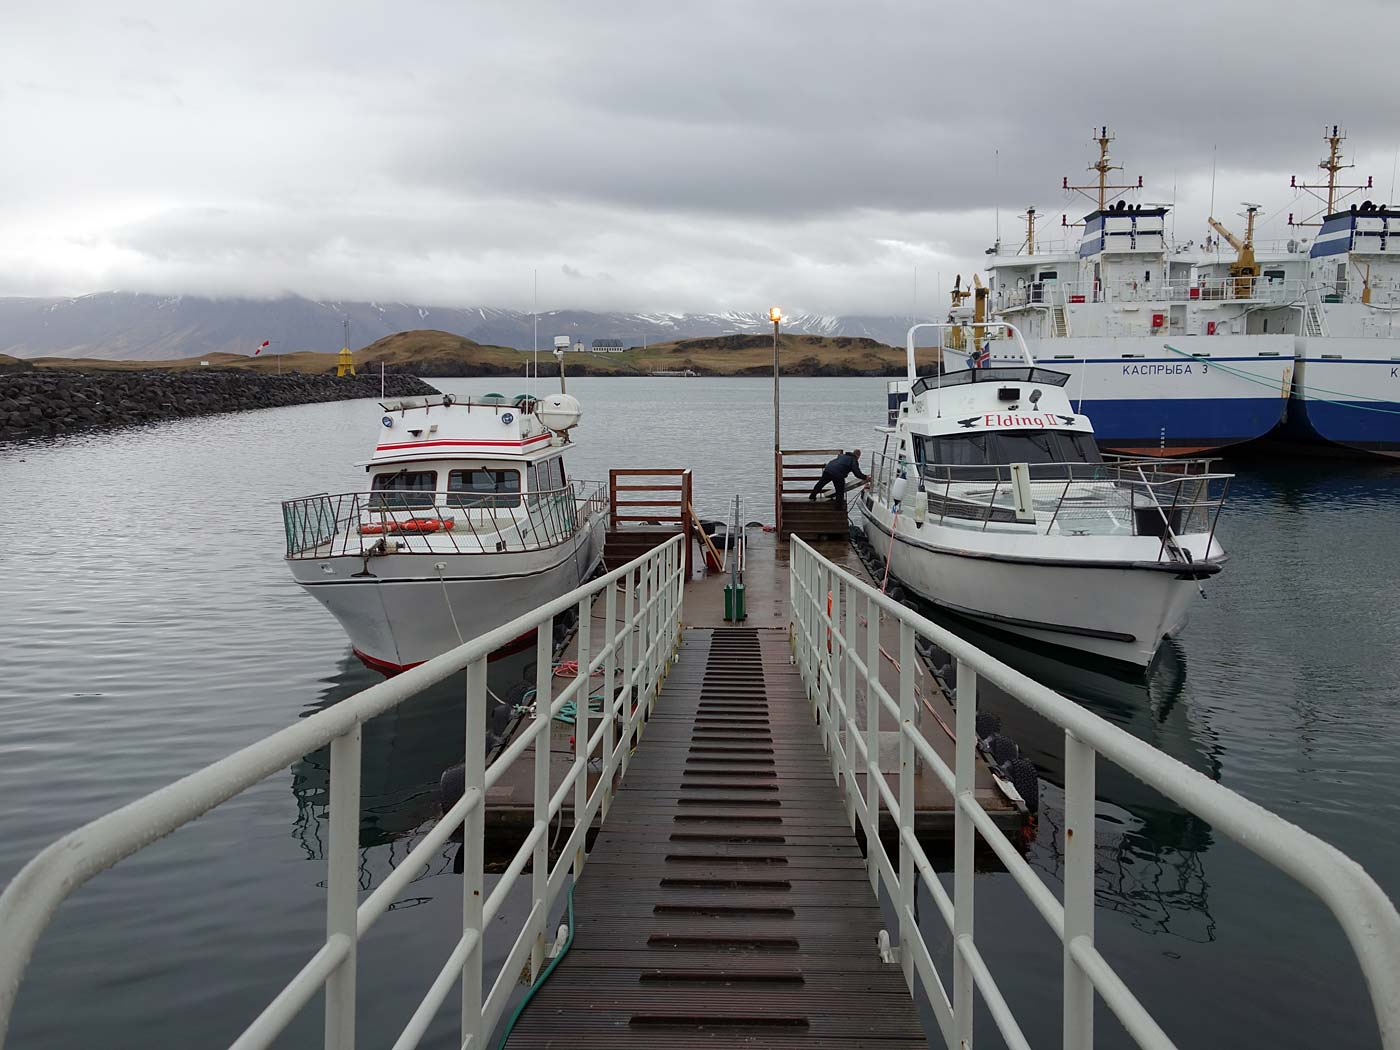 Viðey. Spring trip (with rain) to Viðey. - The first boat to the right brought us to <a href='http://videy.com/en/' target='_blank' class='linksnormal'>Viðey island</a> (you can see the island in the background, very close). (10 May 2013)